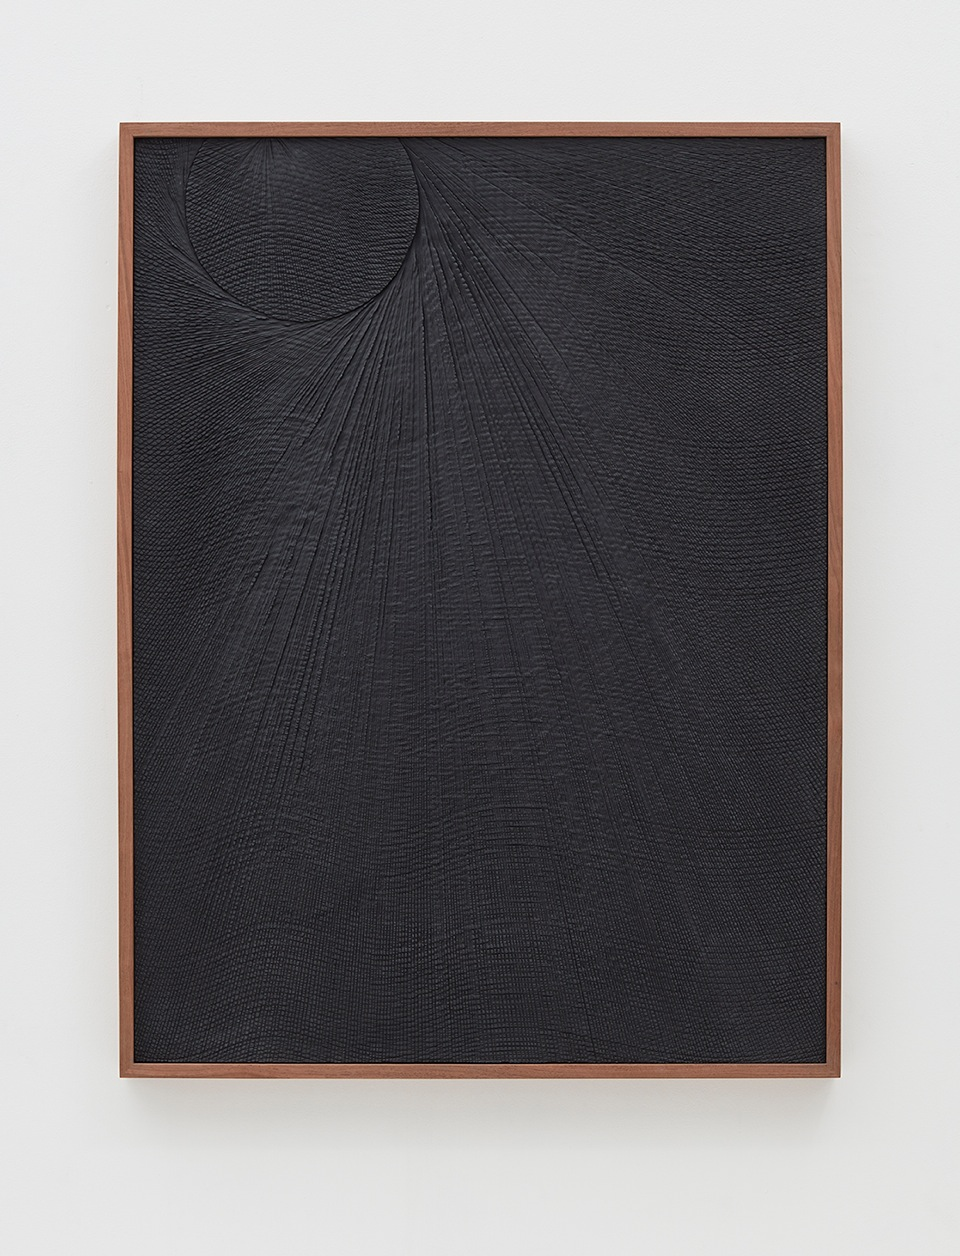 Anthony Pearson Untitled (Etched Plaster) 2016 Pigmented hydrocal in walnut frame 48.75 x 37 x 2.5 in (123.83h x 93.98w x 6.35d cm) AP415